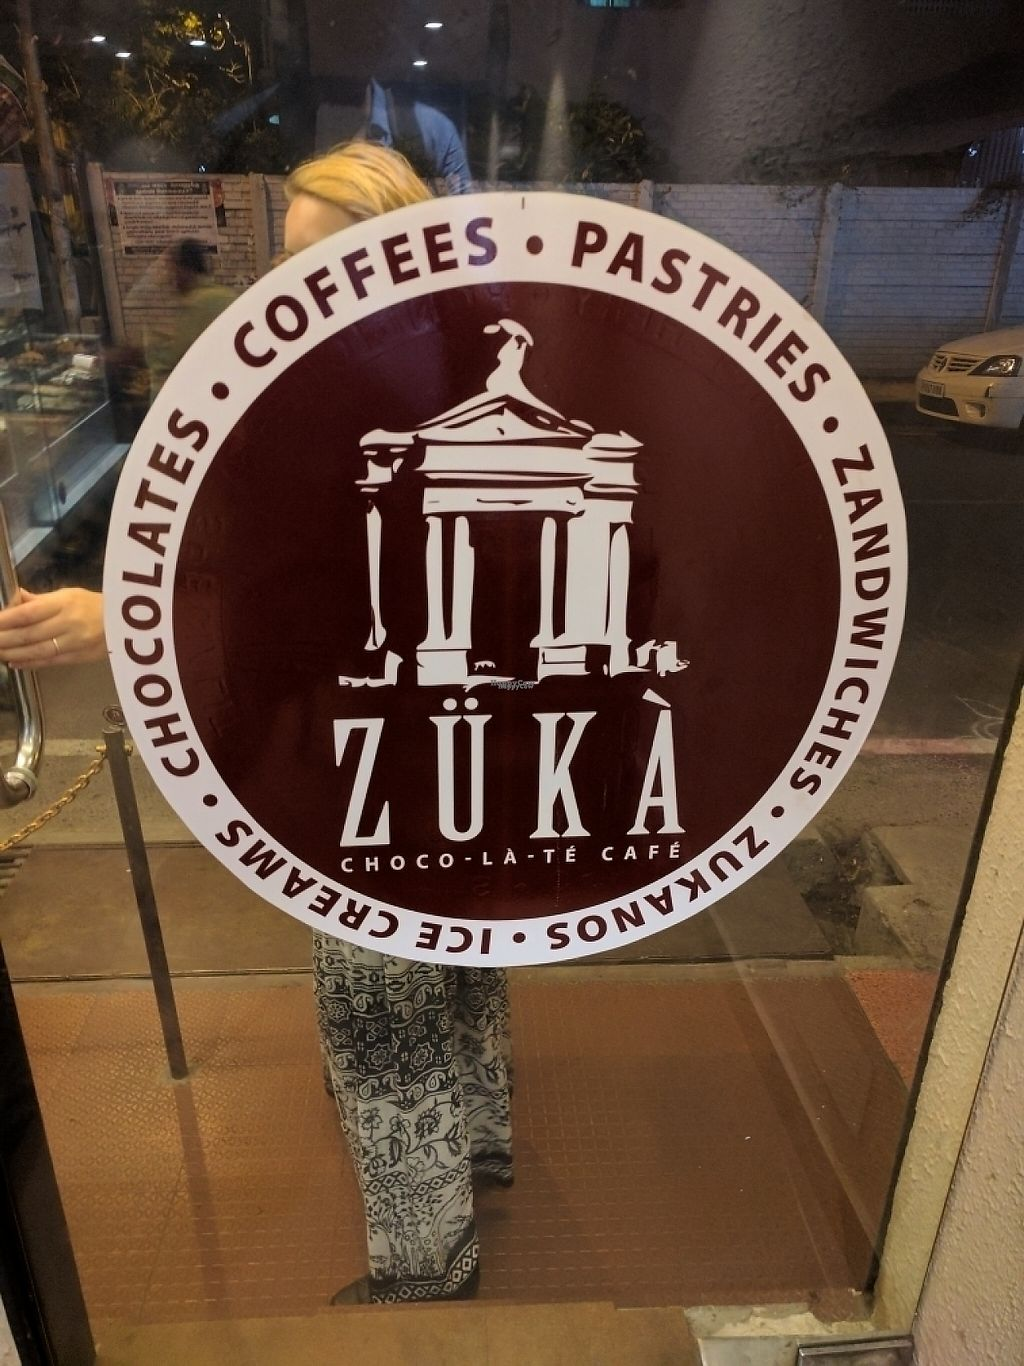 """Photo of Zuka Cake and Dessert Shop  by <a href=""""/members/profile/Floyd205"""">Floyd205</a> <br/>Logo <br/> January 11, 2017  - <a href='/contact/abuse/image/85342/210612'>Report</a>"""